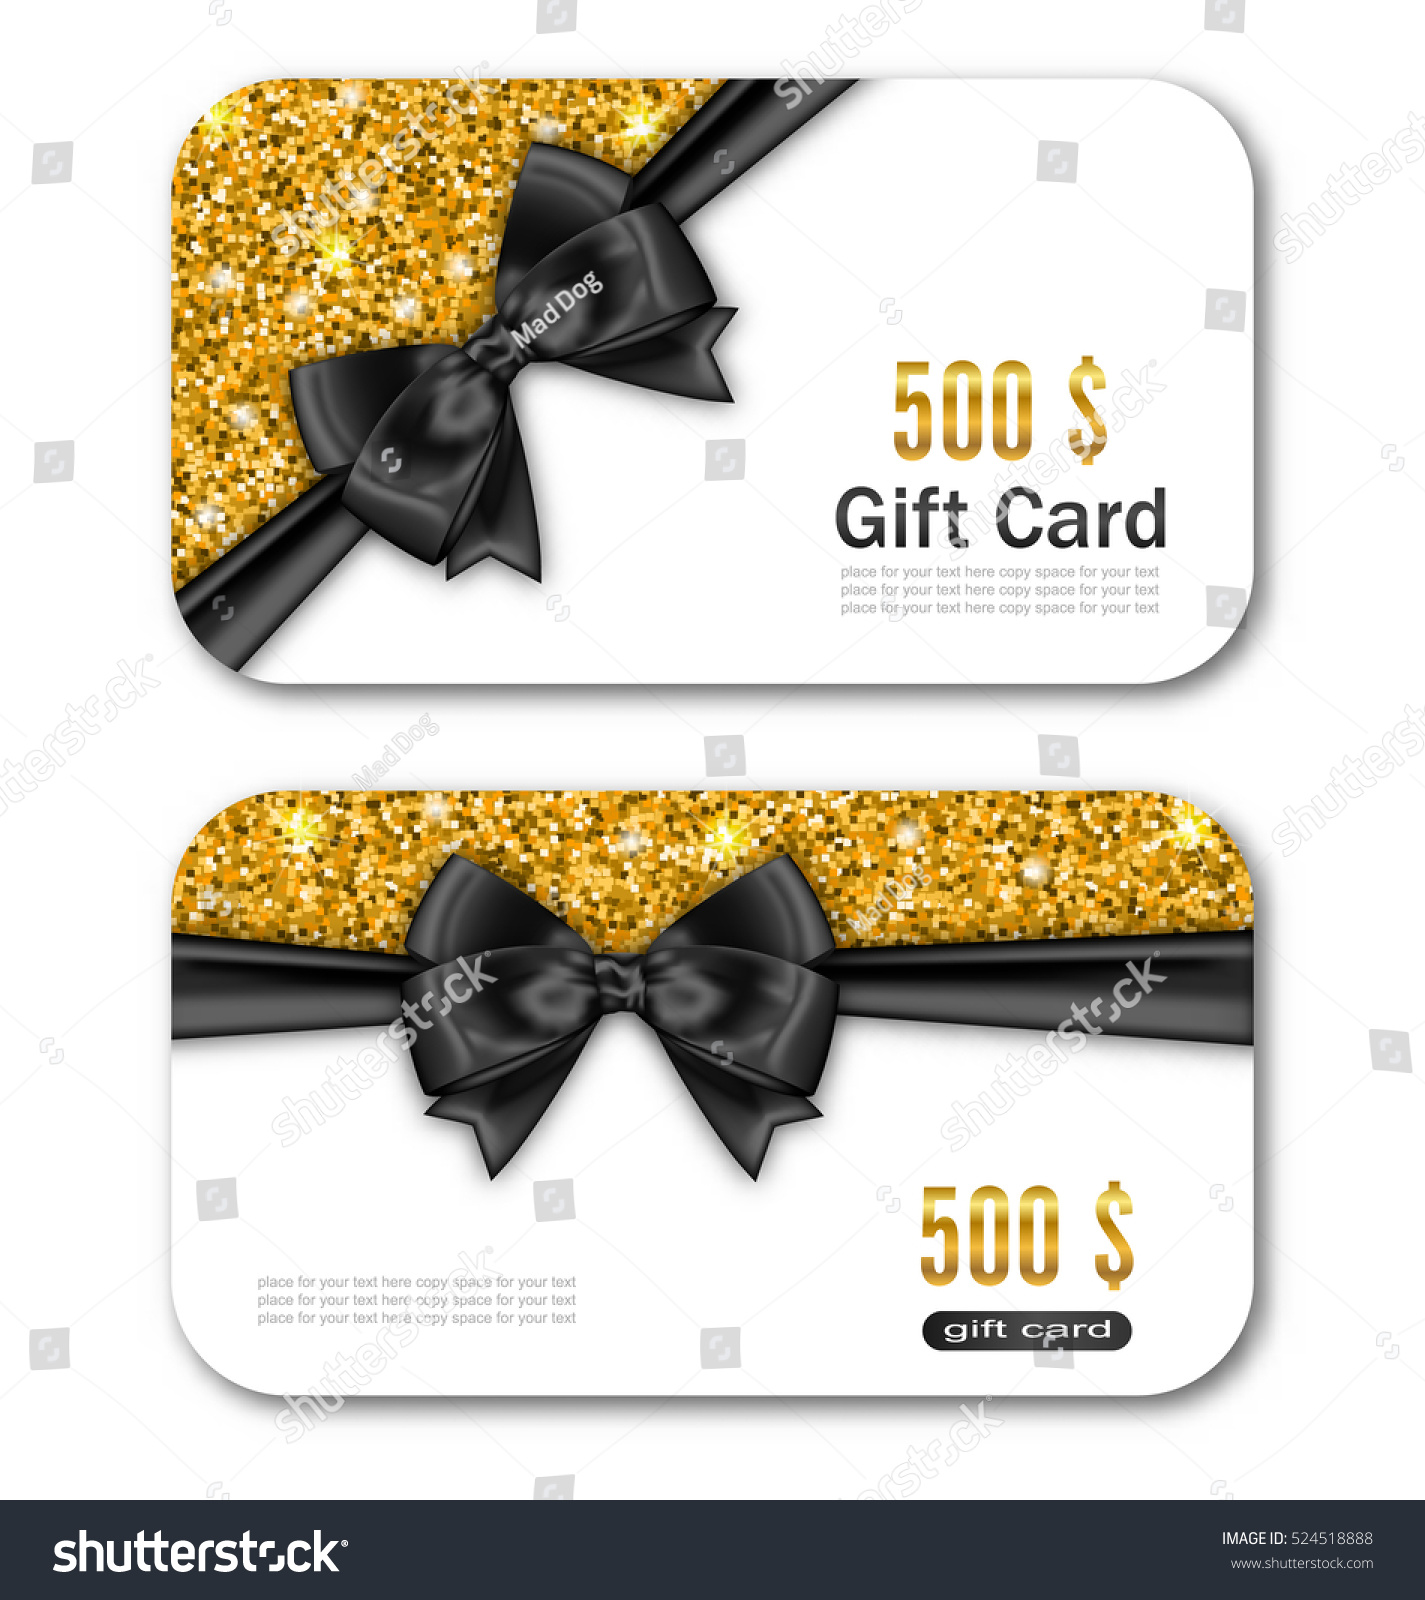 illustration gift card template golden dust stock vector  illustration gift card template golden dust texture and black bow ribbon gift voucher